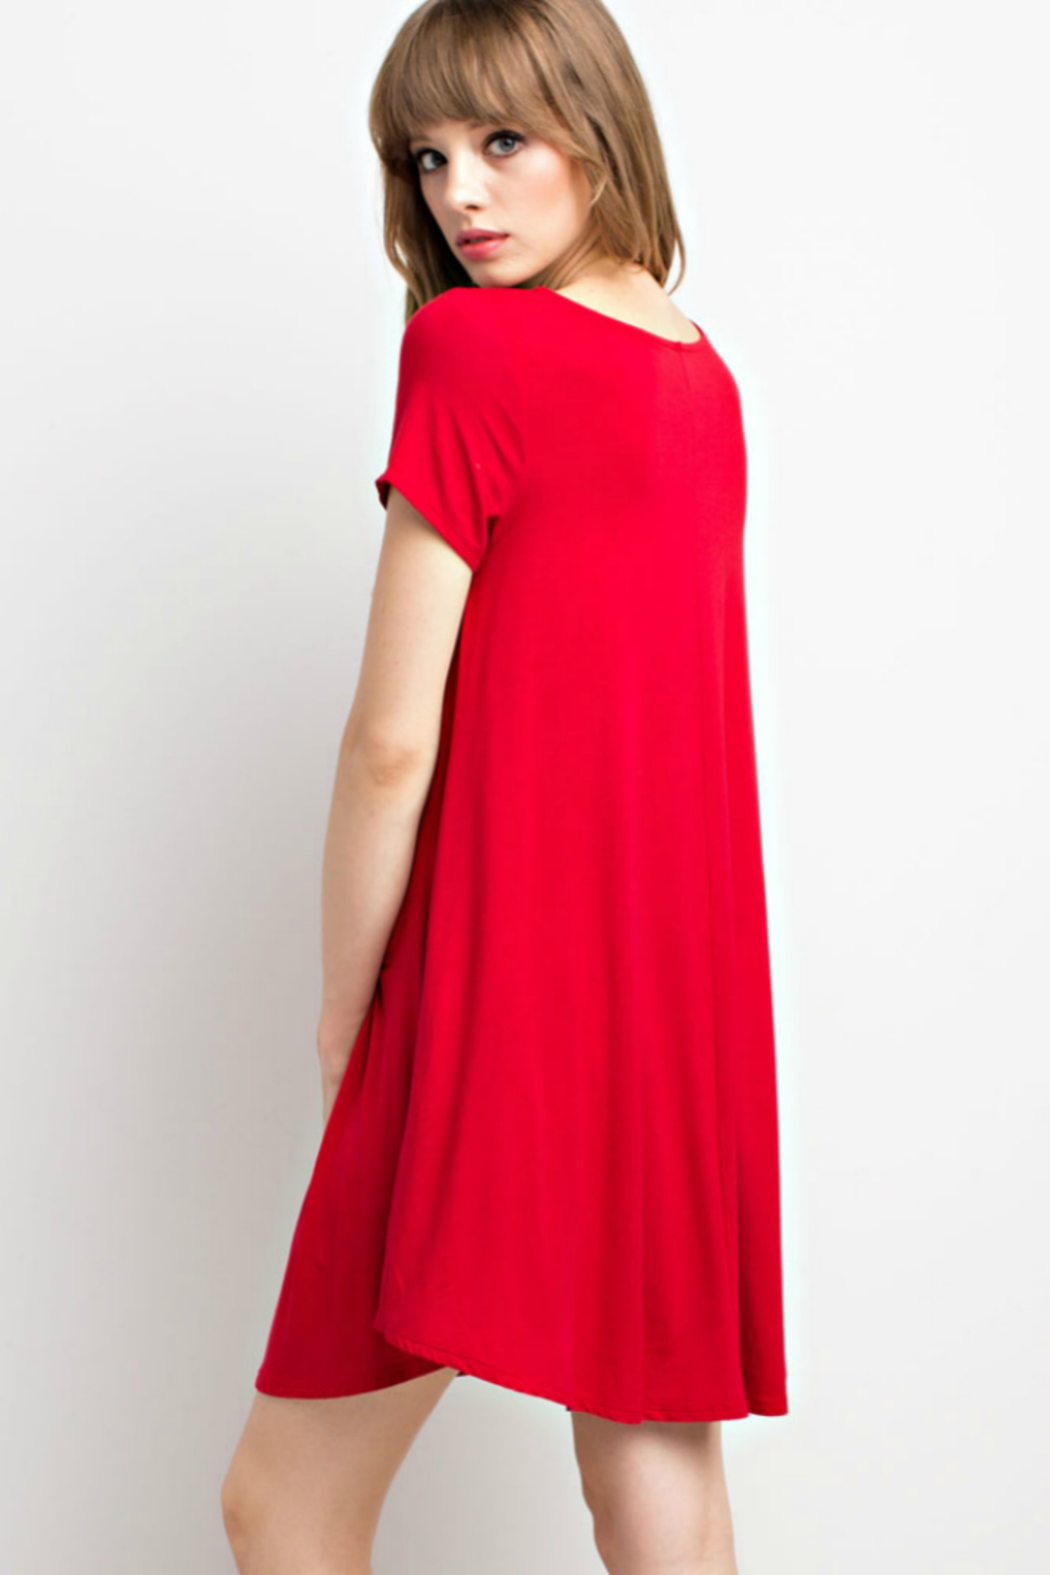 Find red t shirt dress at ShopStyle. Shop the latest collection of red t shirt dress from the most popular stores - all in one place.